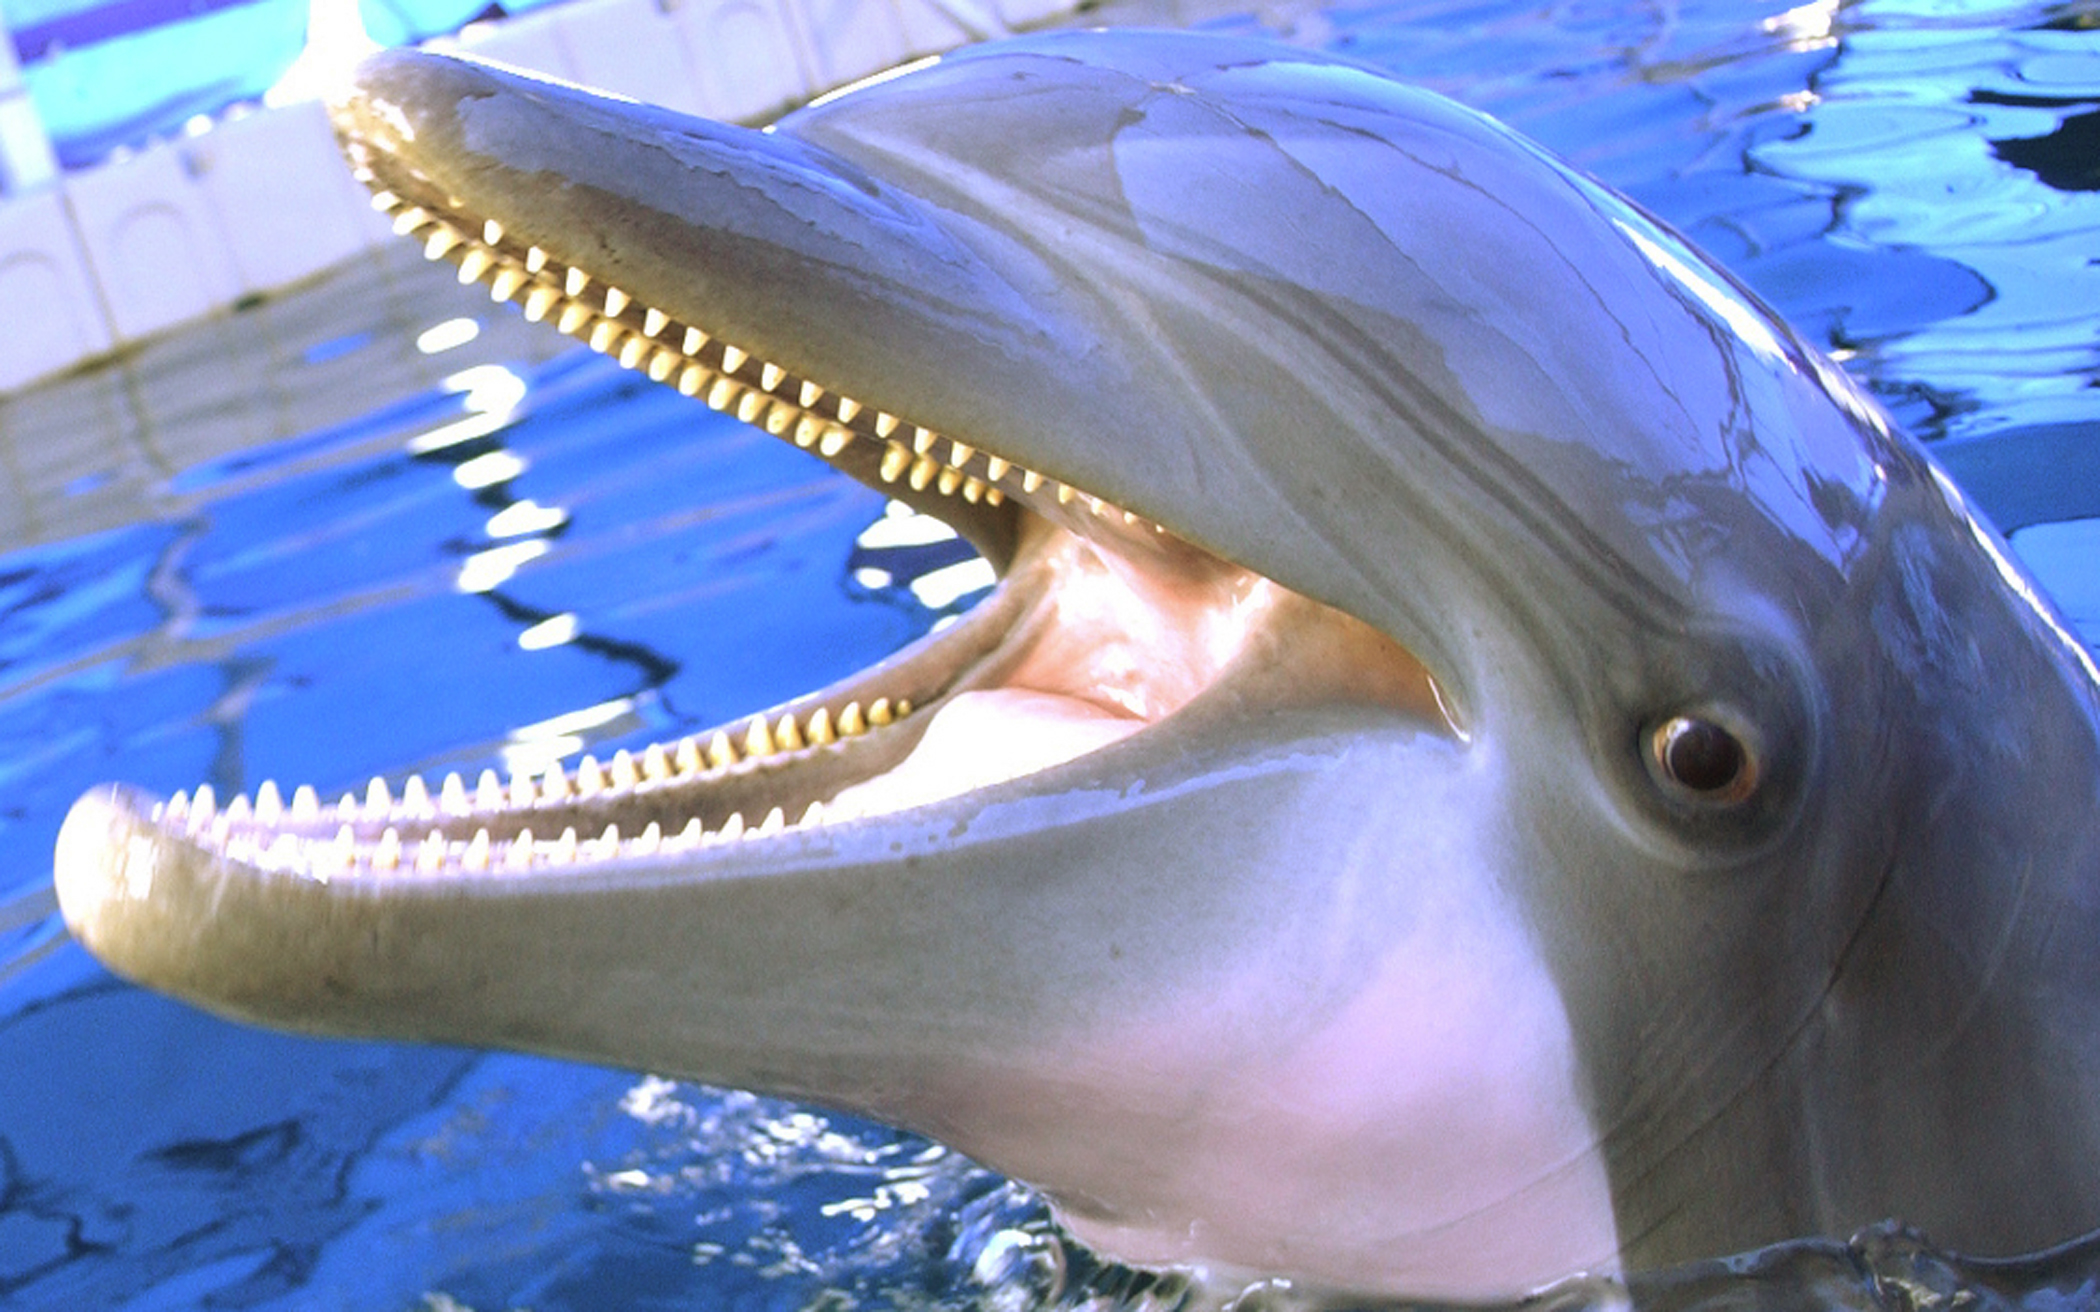 Smiling Dolphin | Free Images at Clker.com - vector clip art ...